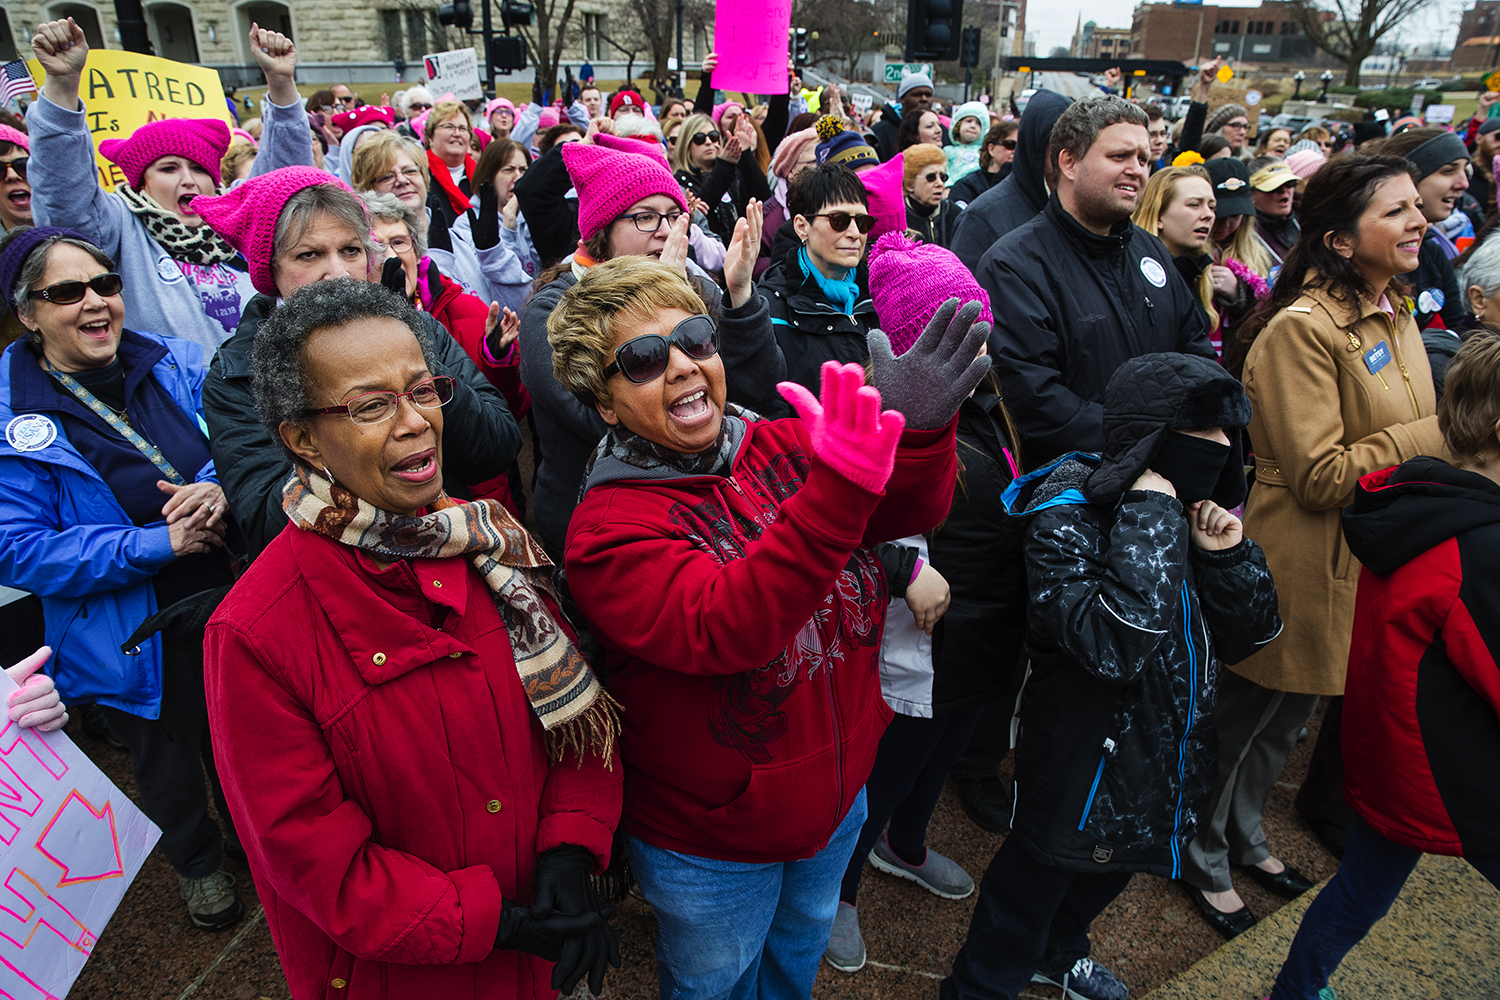 Gwendolyn Lackland, left, and Pamela King cheer for the speakers during the Action Illinois Springfield 'Women's March to the Polls' rally and march in Springfield, Ill., Saturday, Jan. 20, 2018. [Ted Schurter/The State Journal-Register]